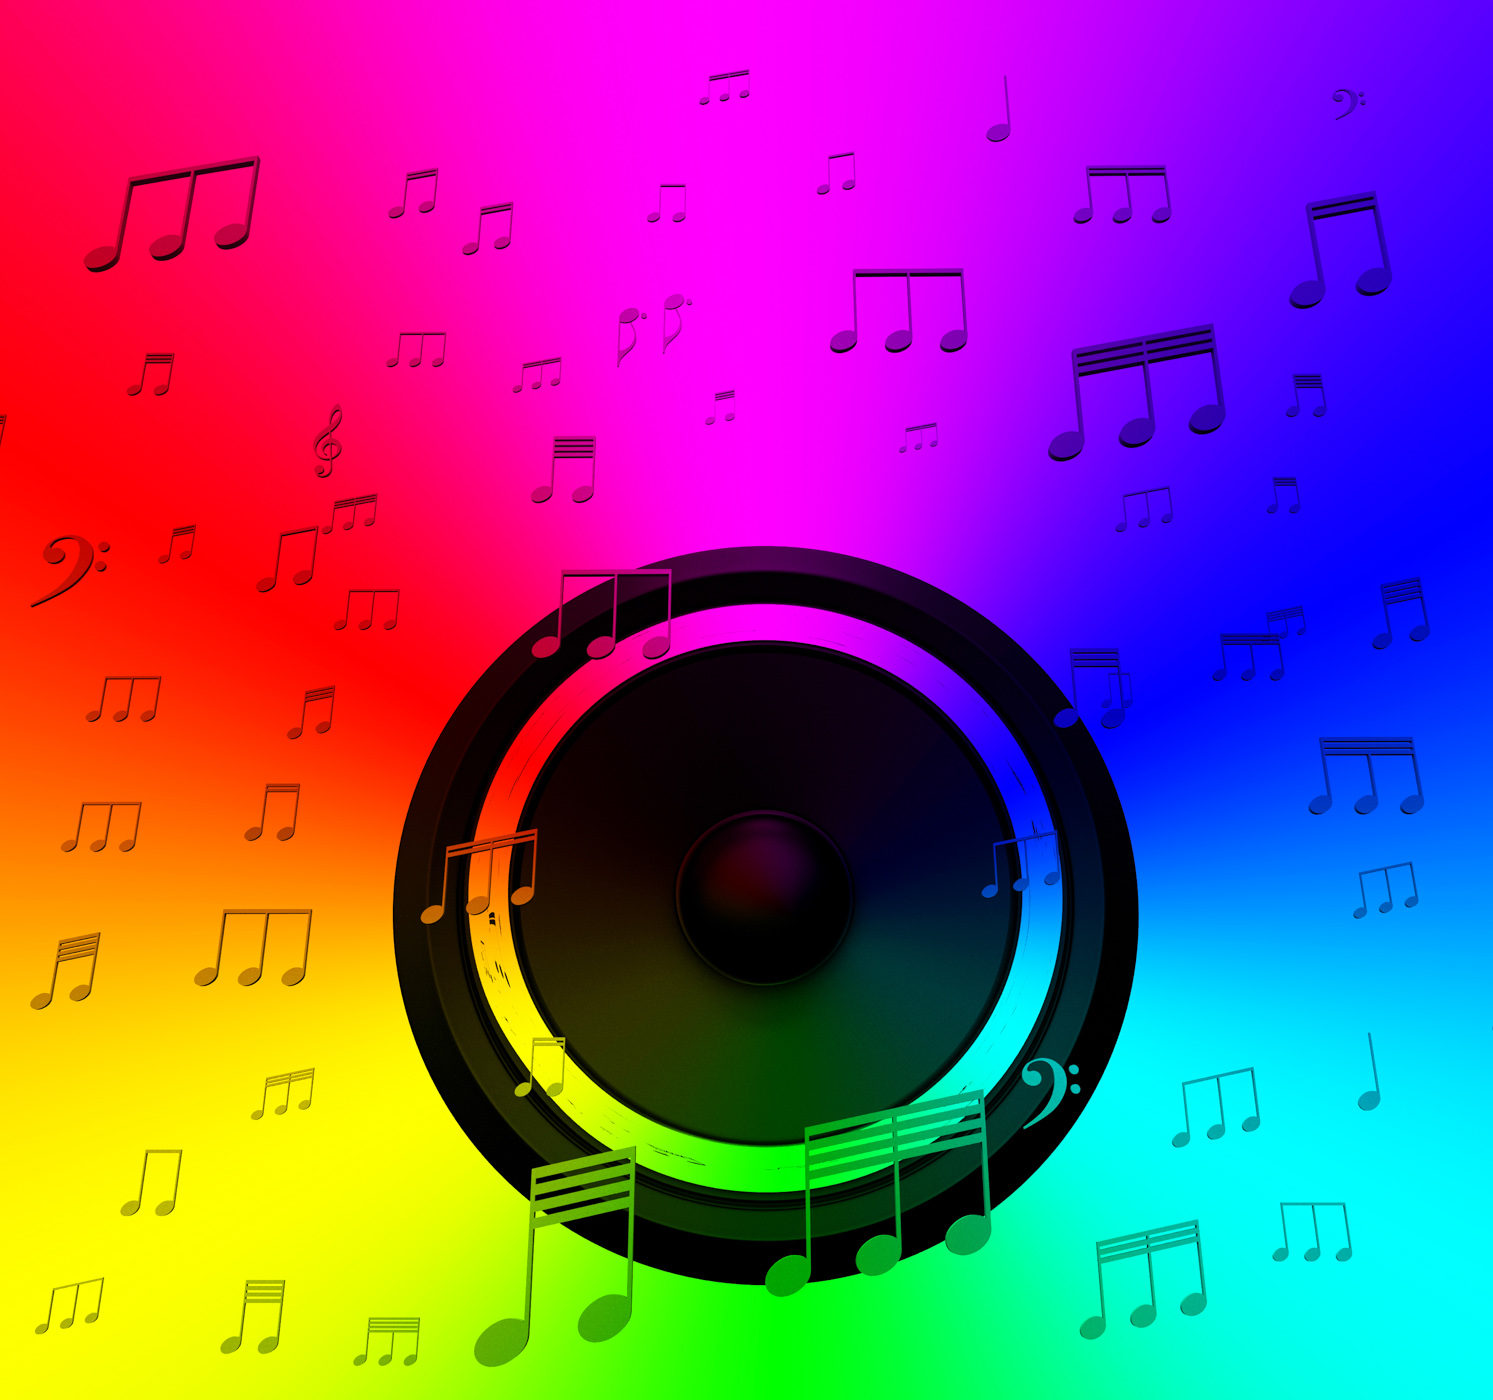 Speaker and musical notes shows music disco or concert photo